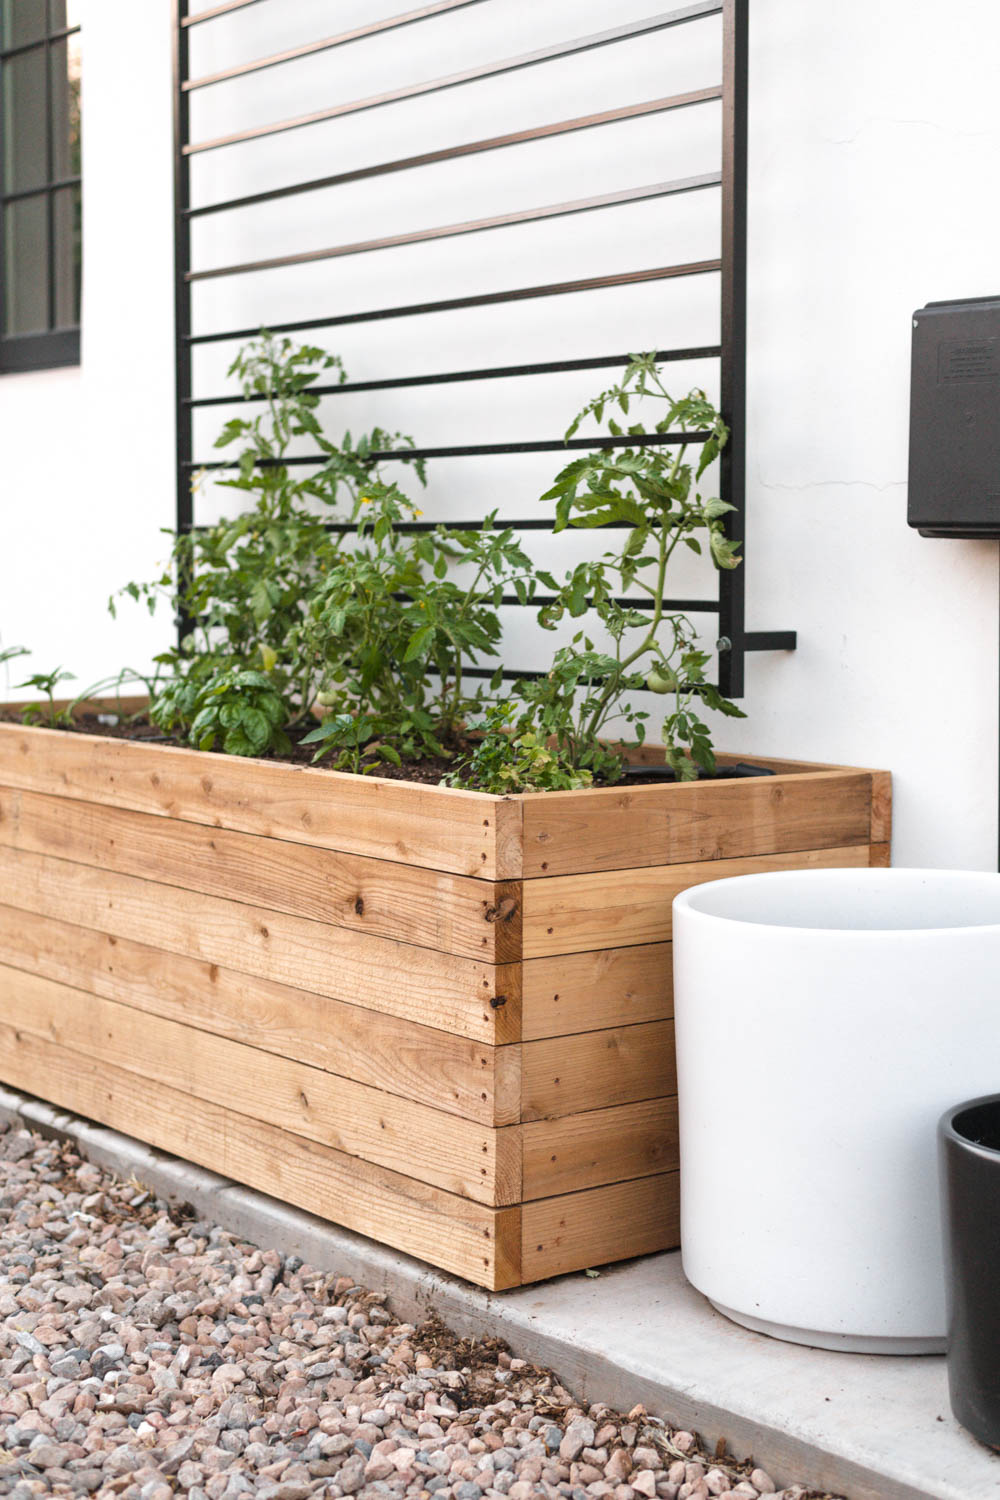 Diy Raised Planter Box In Just 3 Steps Vintage Revivals